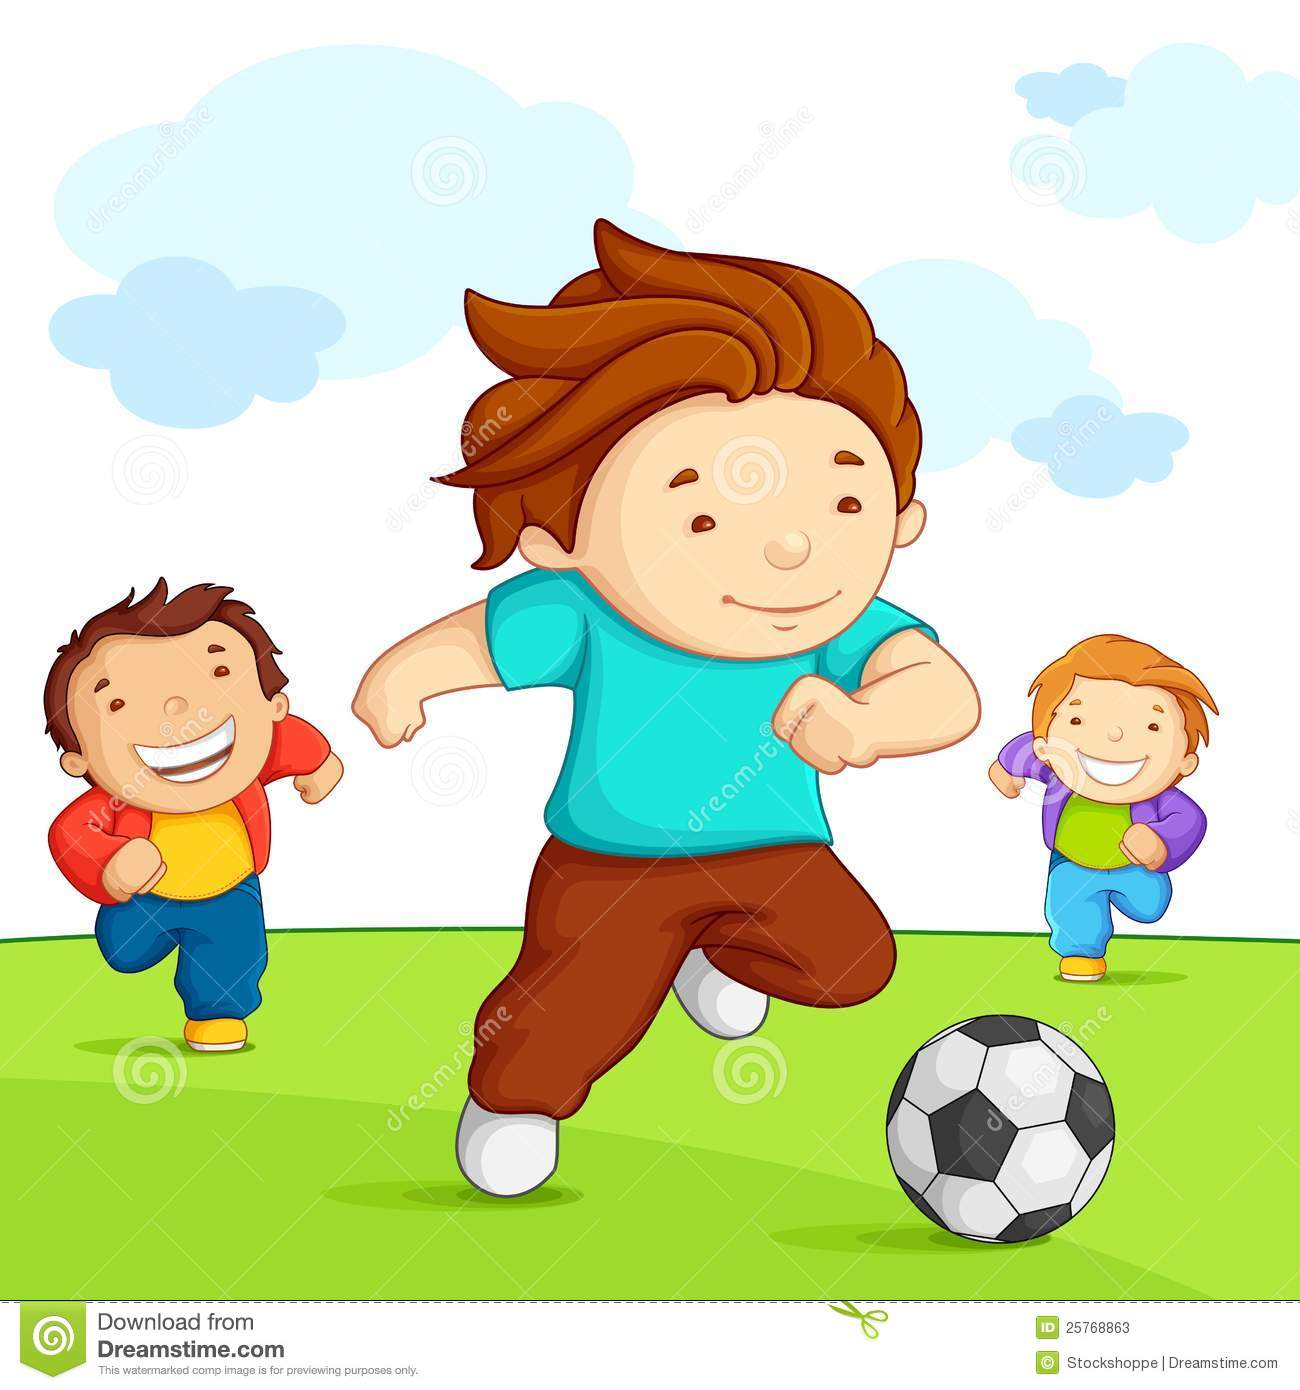 Kids Playing Football Illustrations, Royalty-Free Vector ... |Kids Playing Soccer Clipart